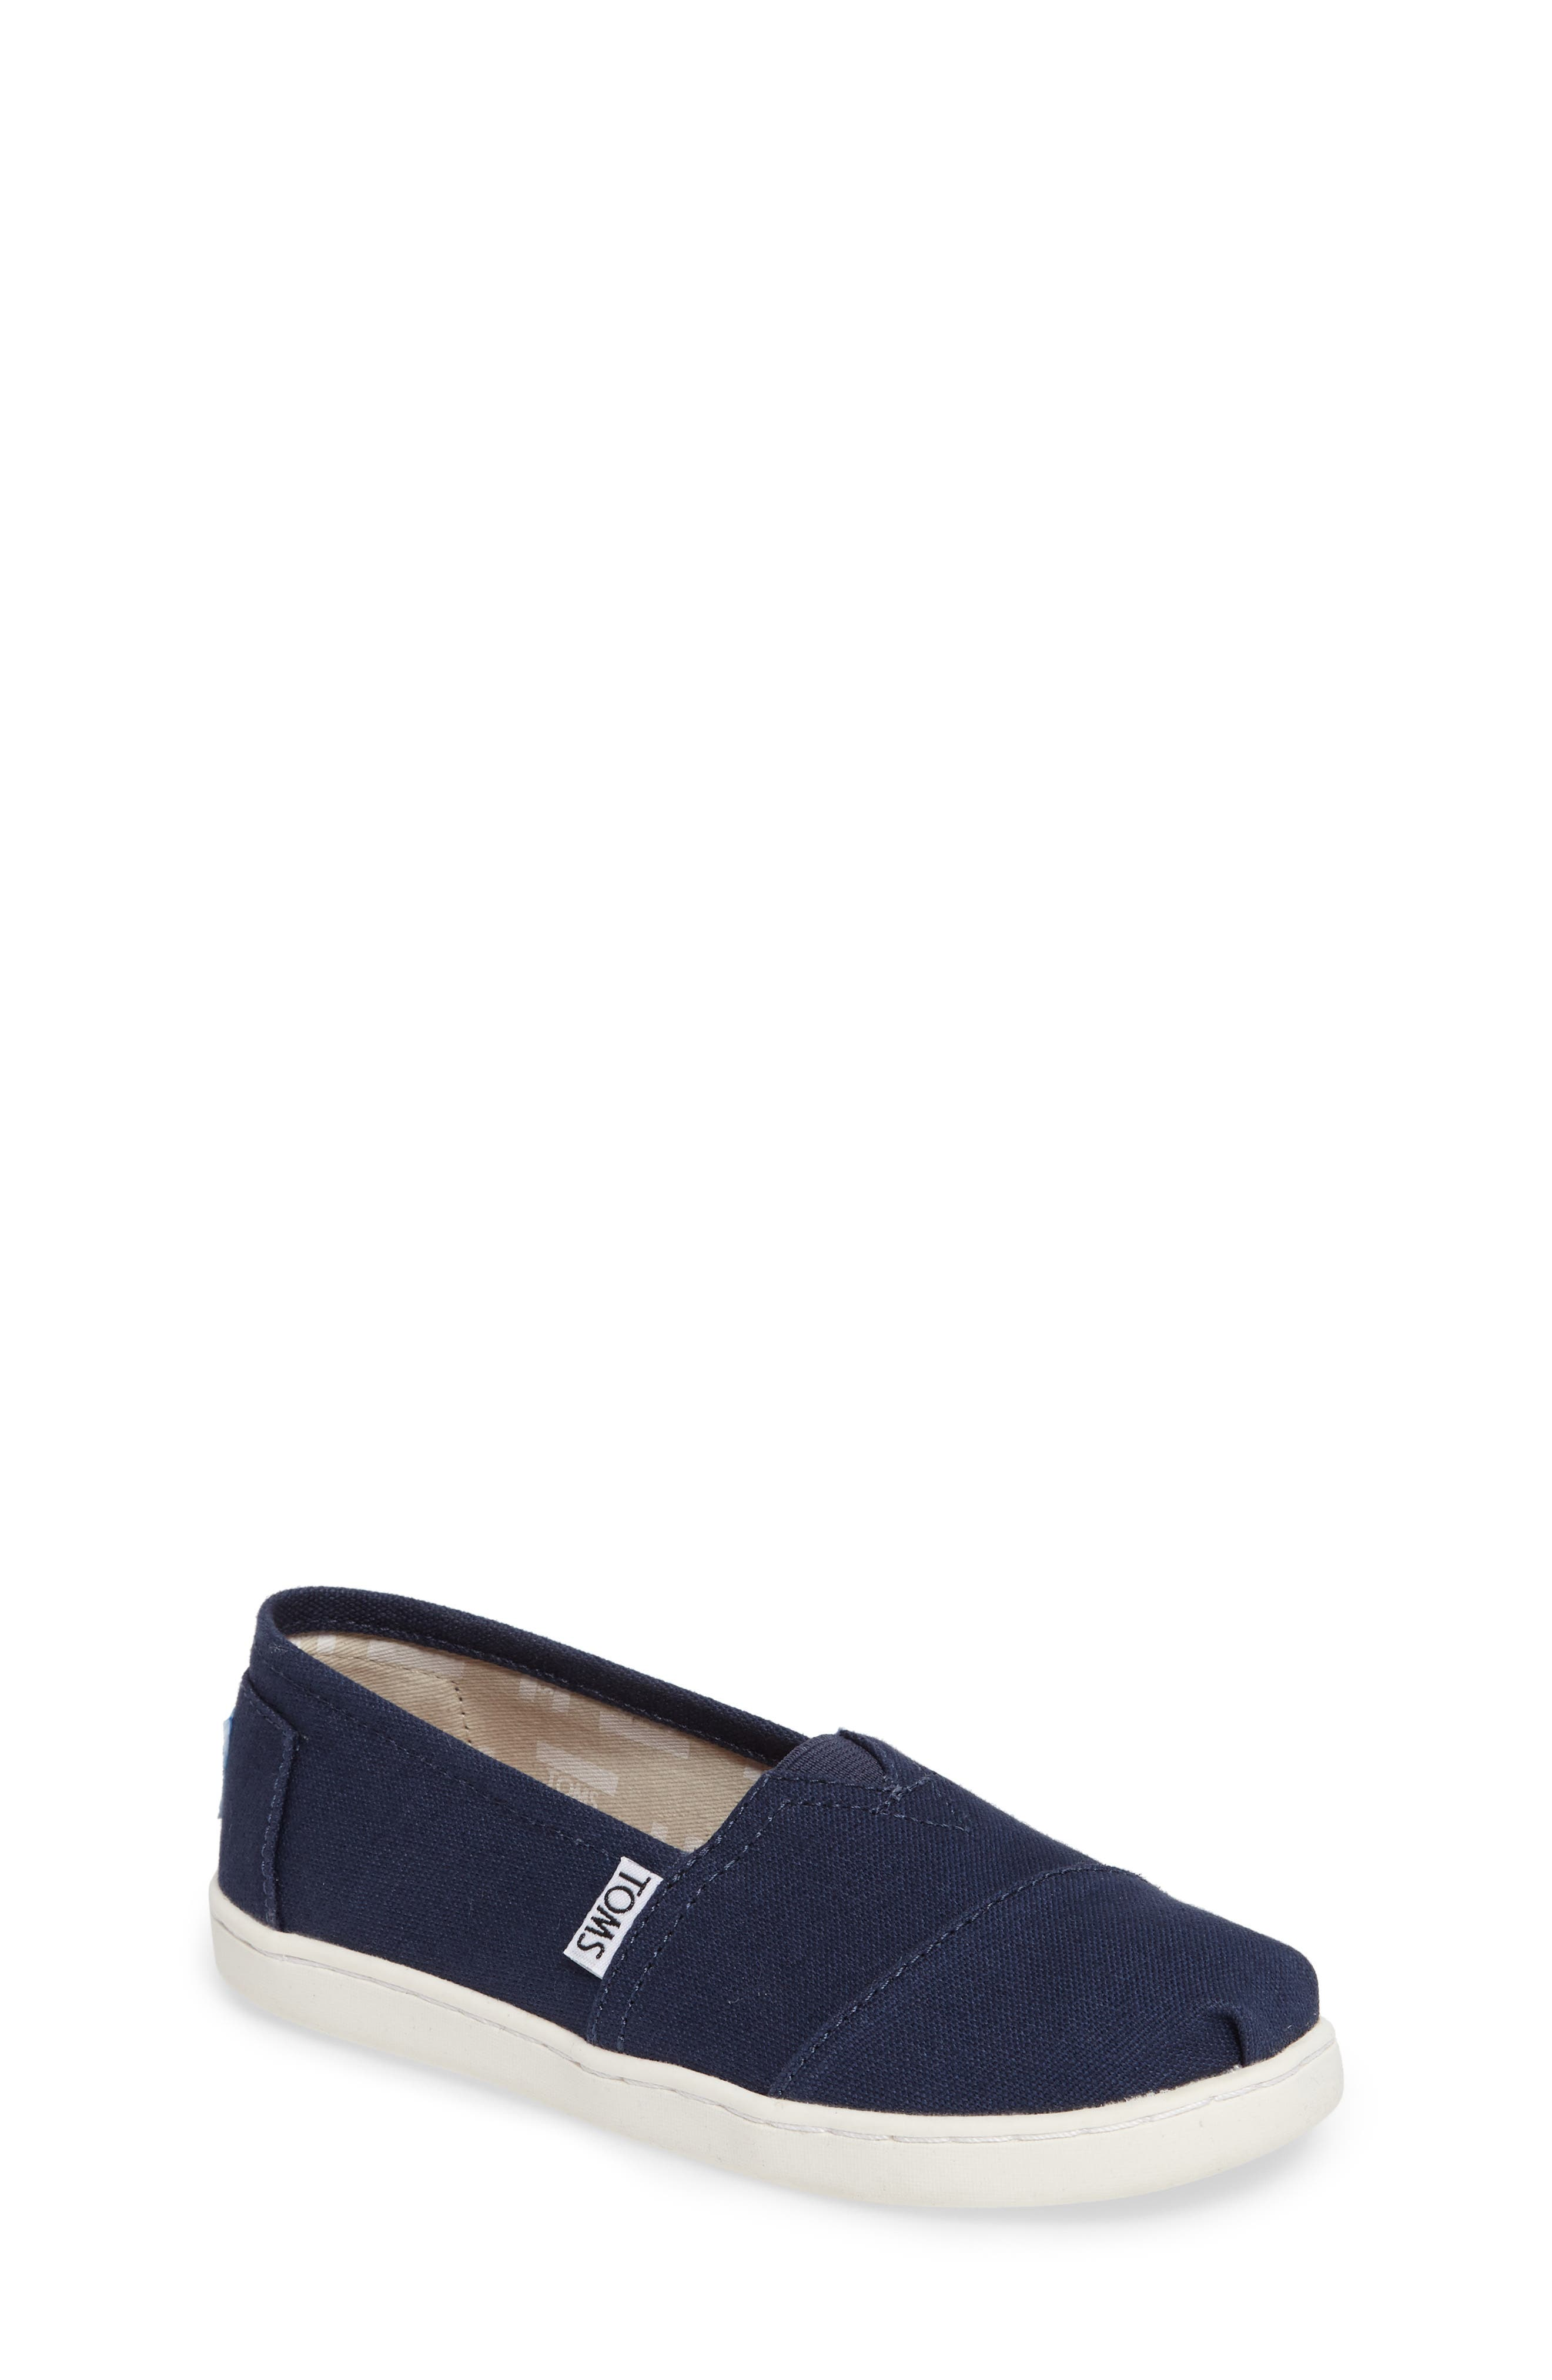 TOMS 2.0 Classic Alpargata Slip-On (Toddler, Little Kid & Big Kid)